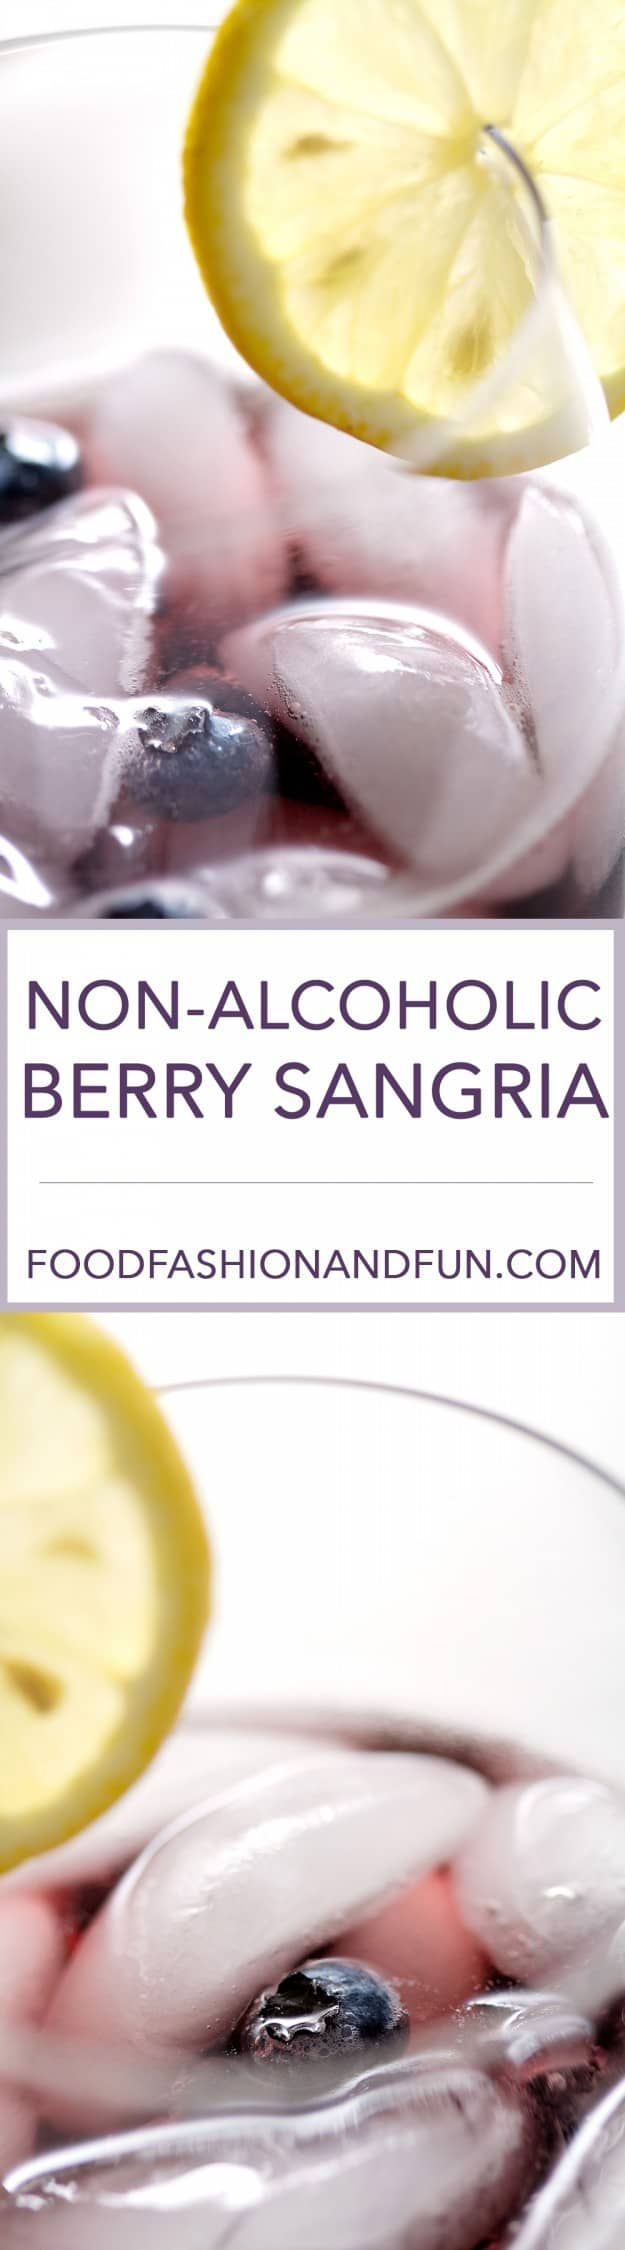 Fruity and sweet Non-Alcoholic Berry Sangria, without the wine, but all the flavor. This recipe is allergy friendly (gluten, dairy, shellfish, nut, egg, and soy free) and suits the autoimmune protocol diet (AIP), paleo and vegan diets.